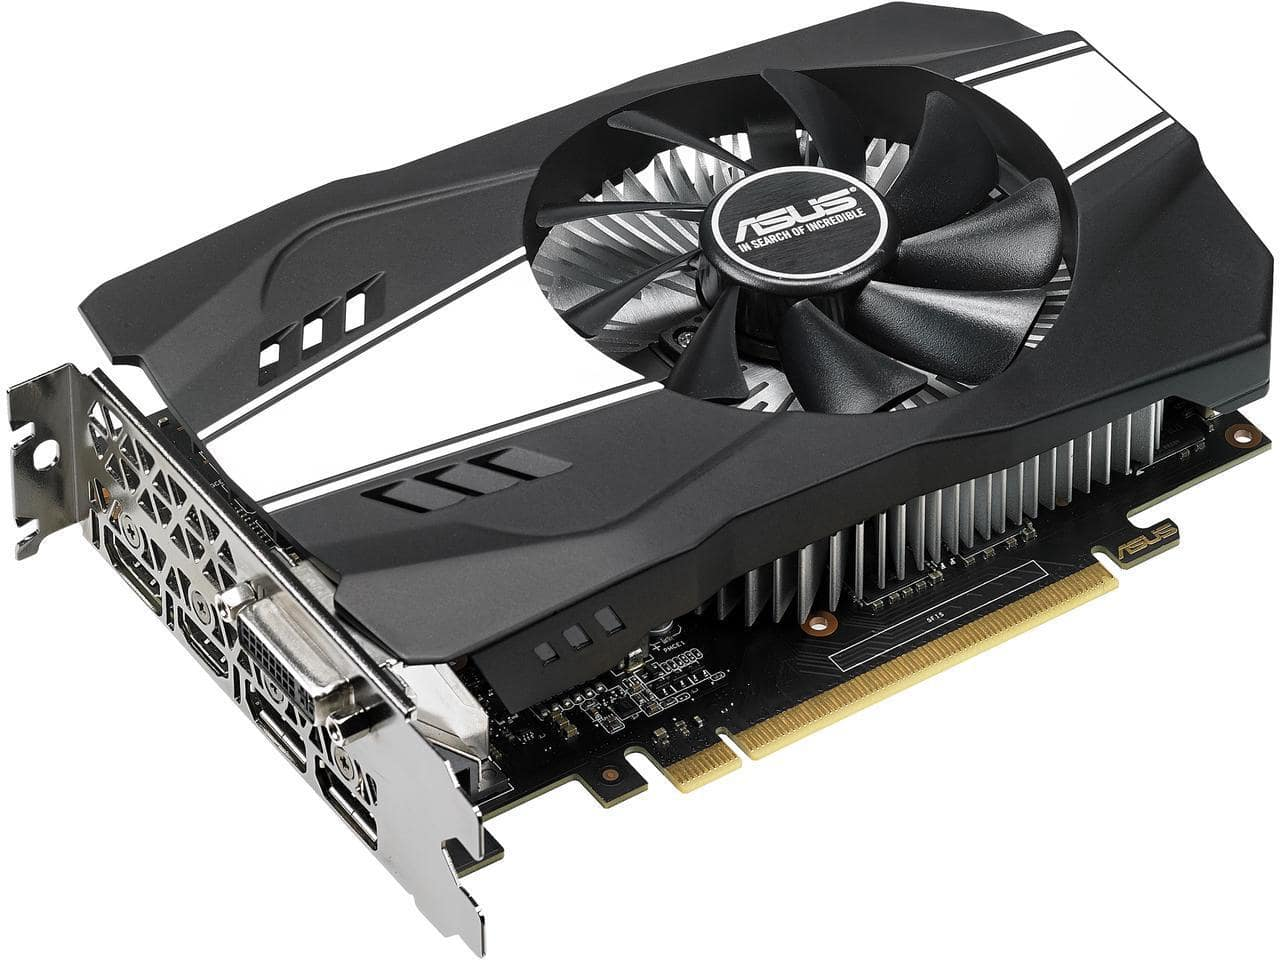 ASUS GeForce GTX 1060 3GB $220